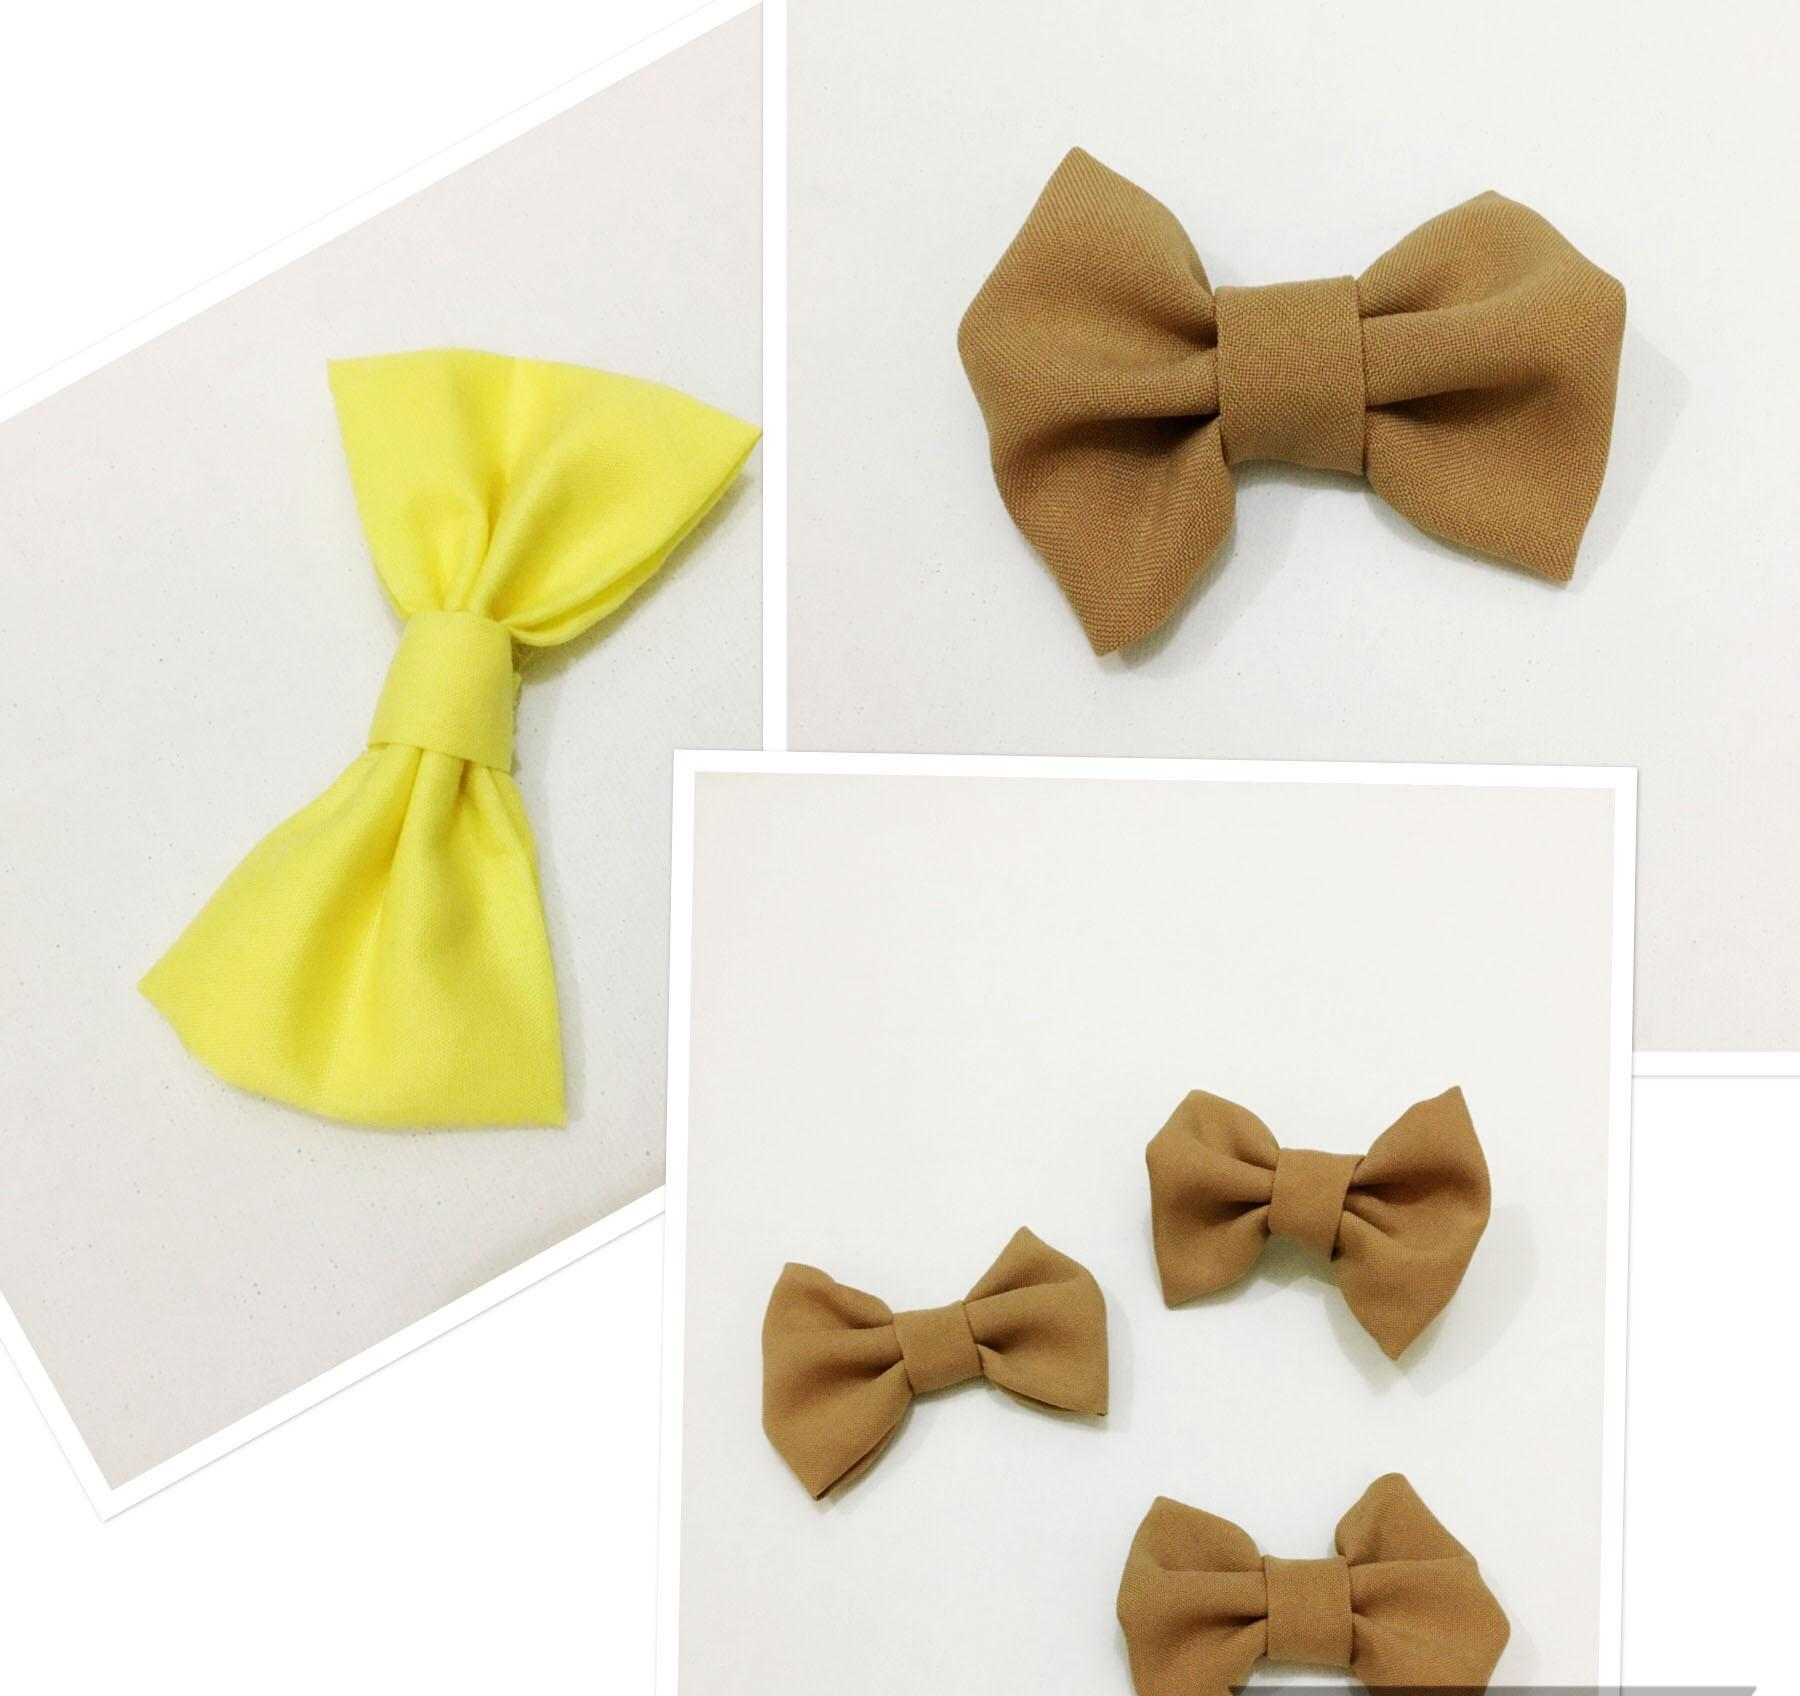 Handmade Men Bow Tie Fashion Accessories By Mimichi Fashion.